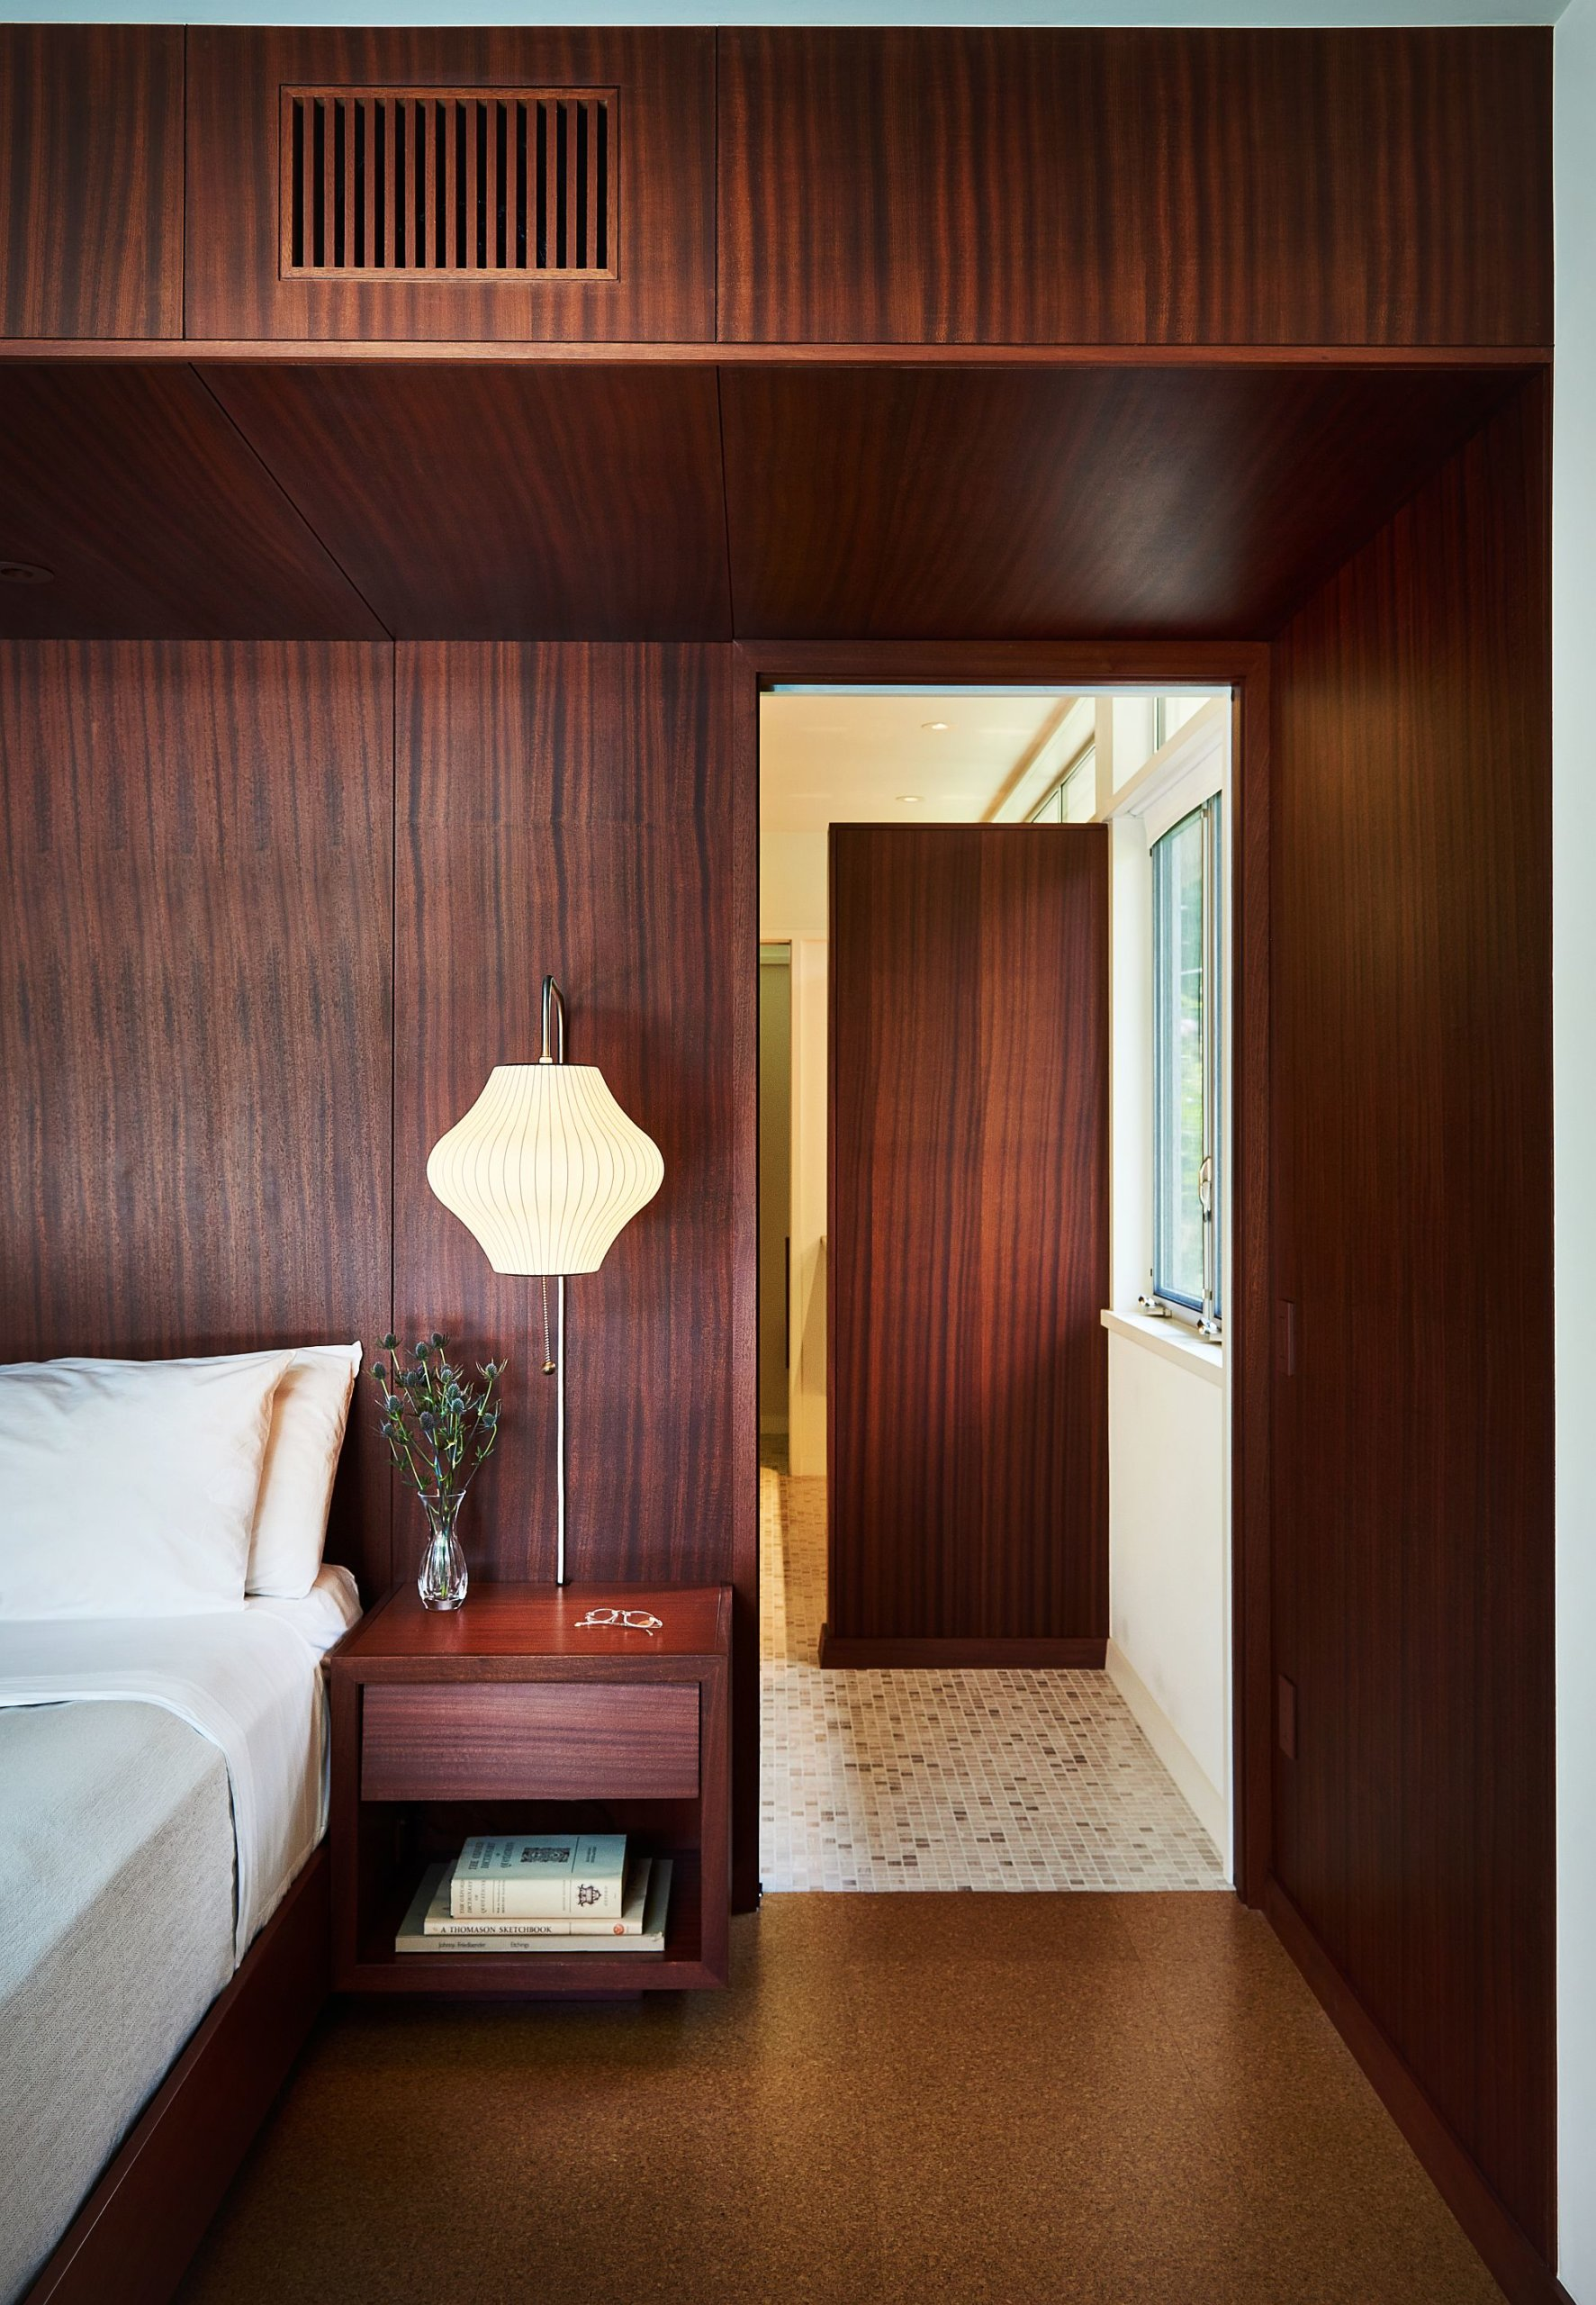 Bedroom walls draped in wood present a picture of opulence and midcentury modern appeal